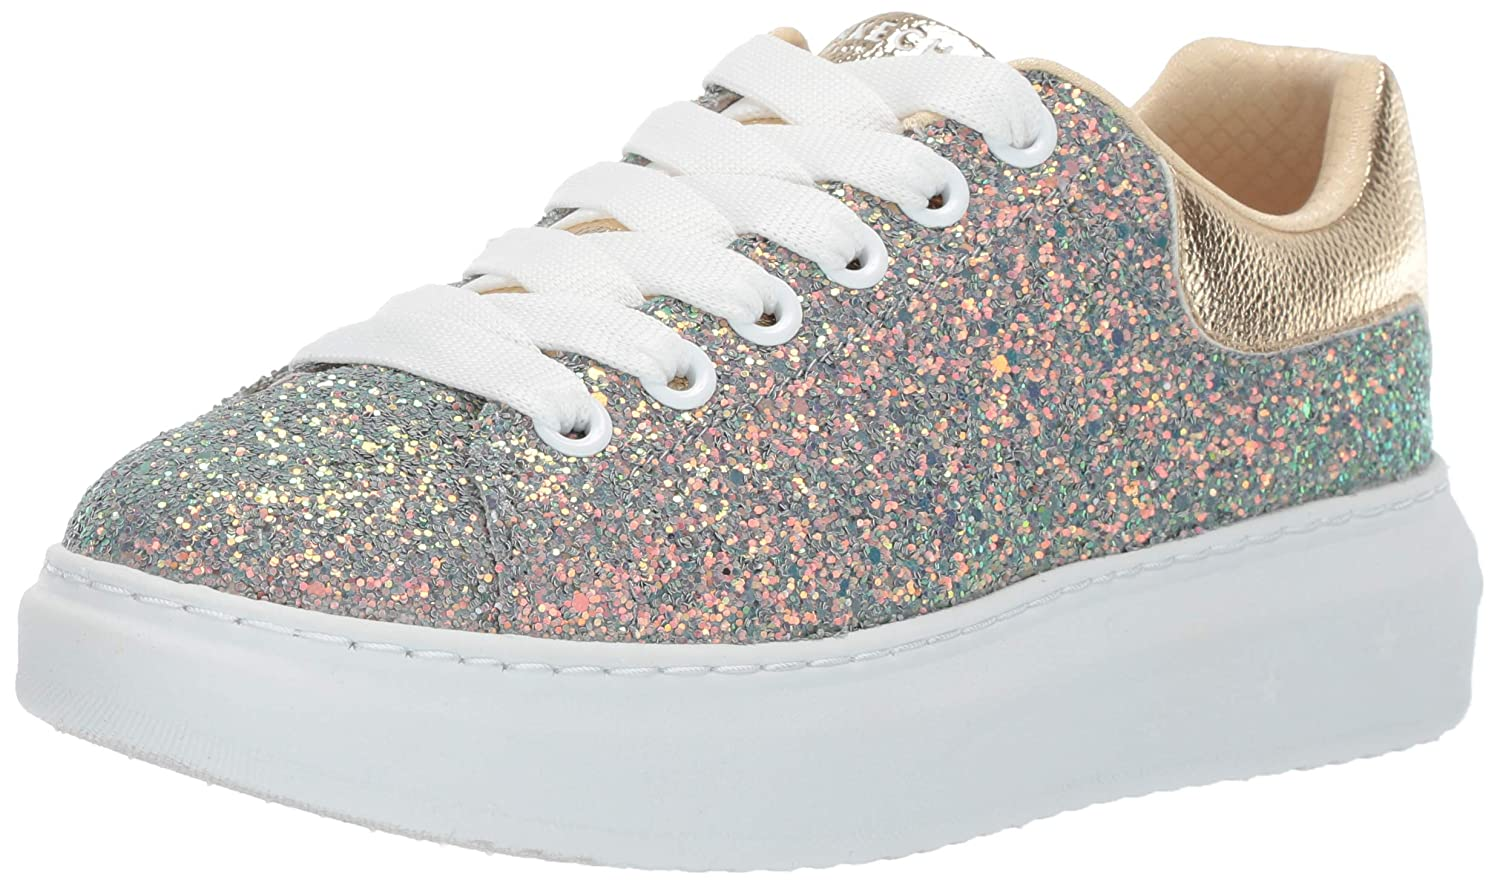 Skechers High Street Glitter Rockers 73701NTMT, Turnschuhe